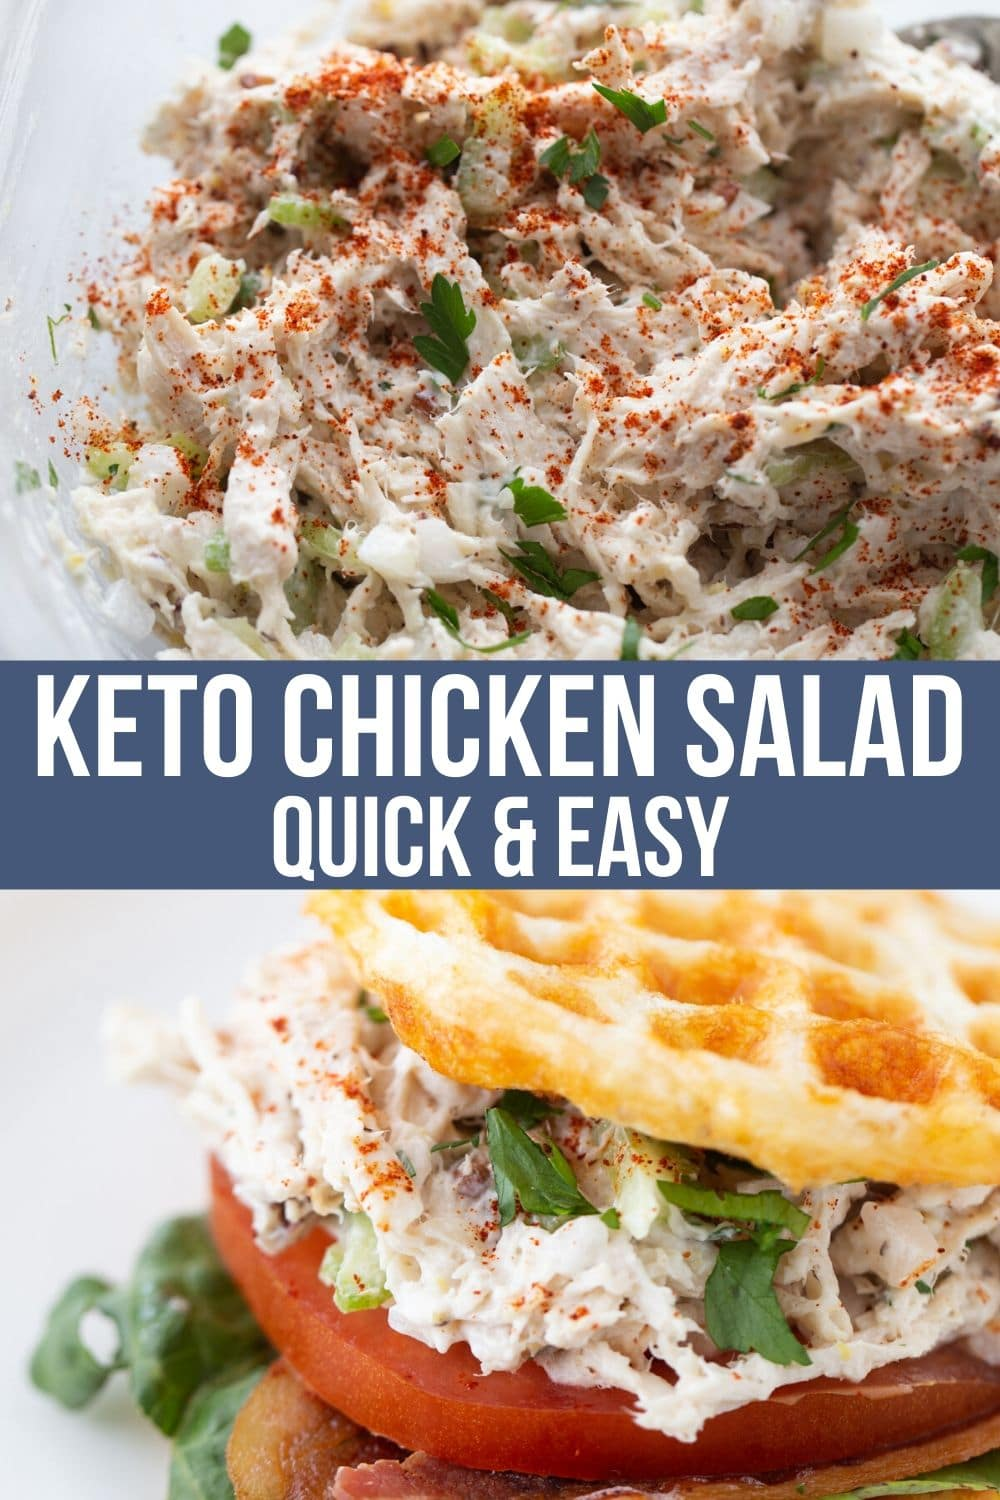 keto chicken salad recipe in a bowl and on a chaffle